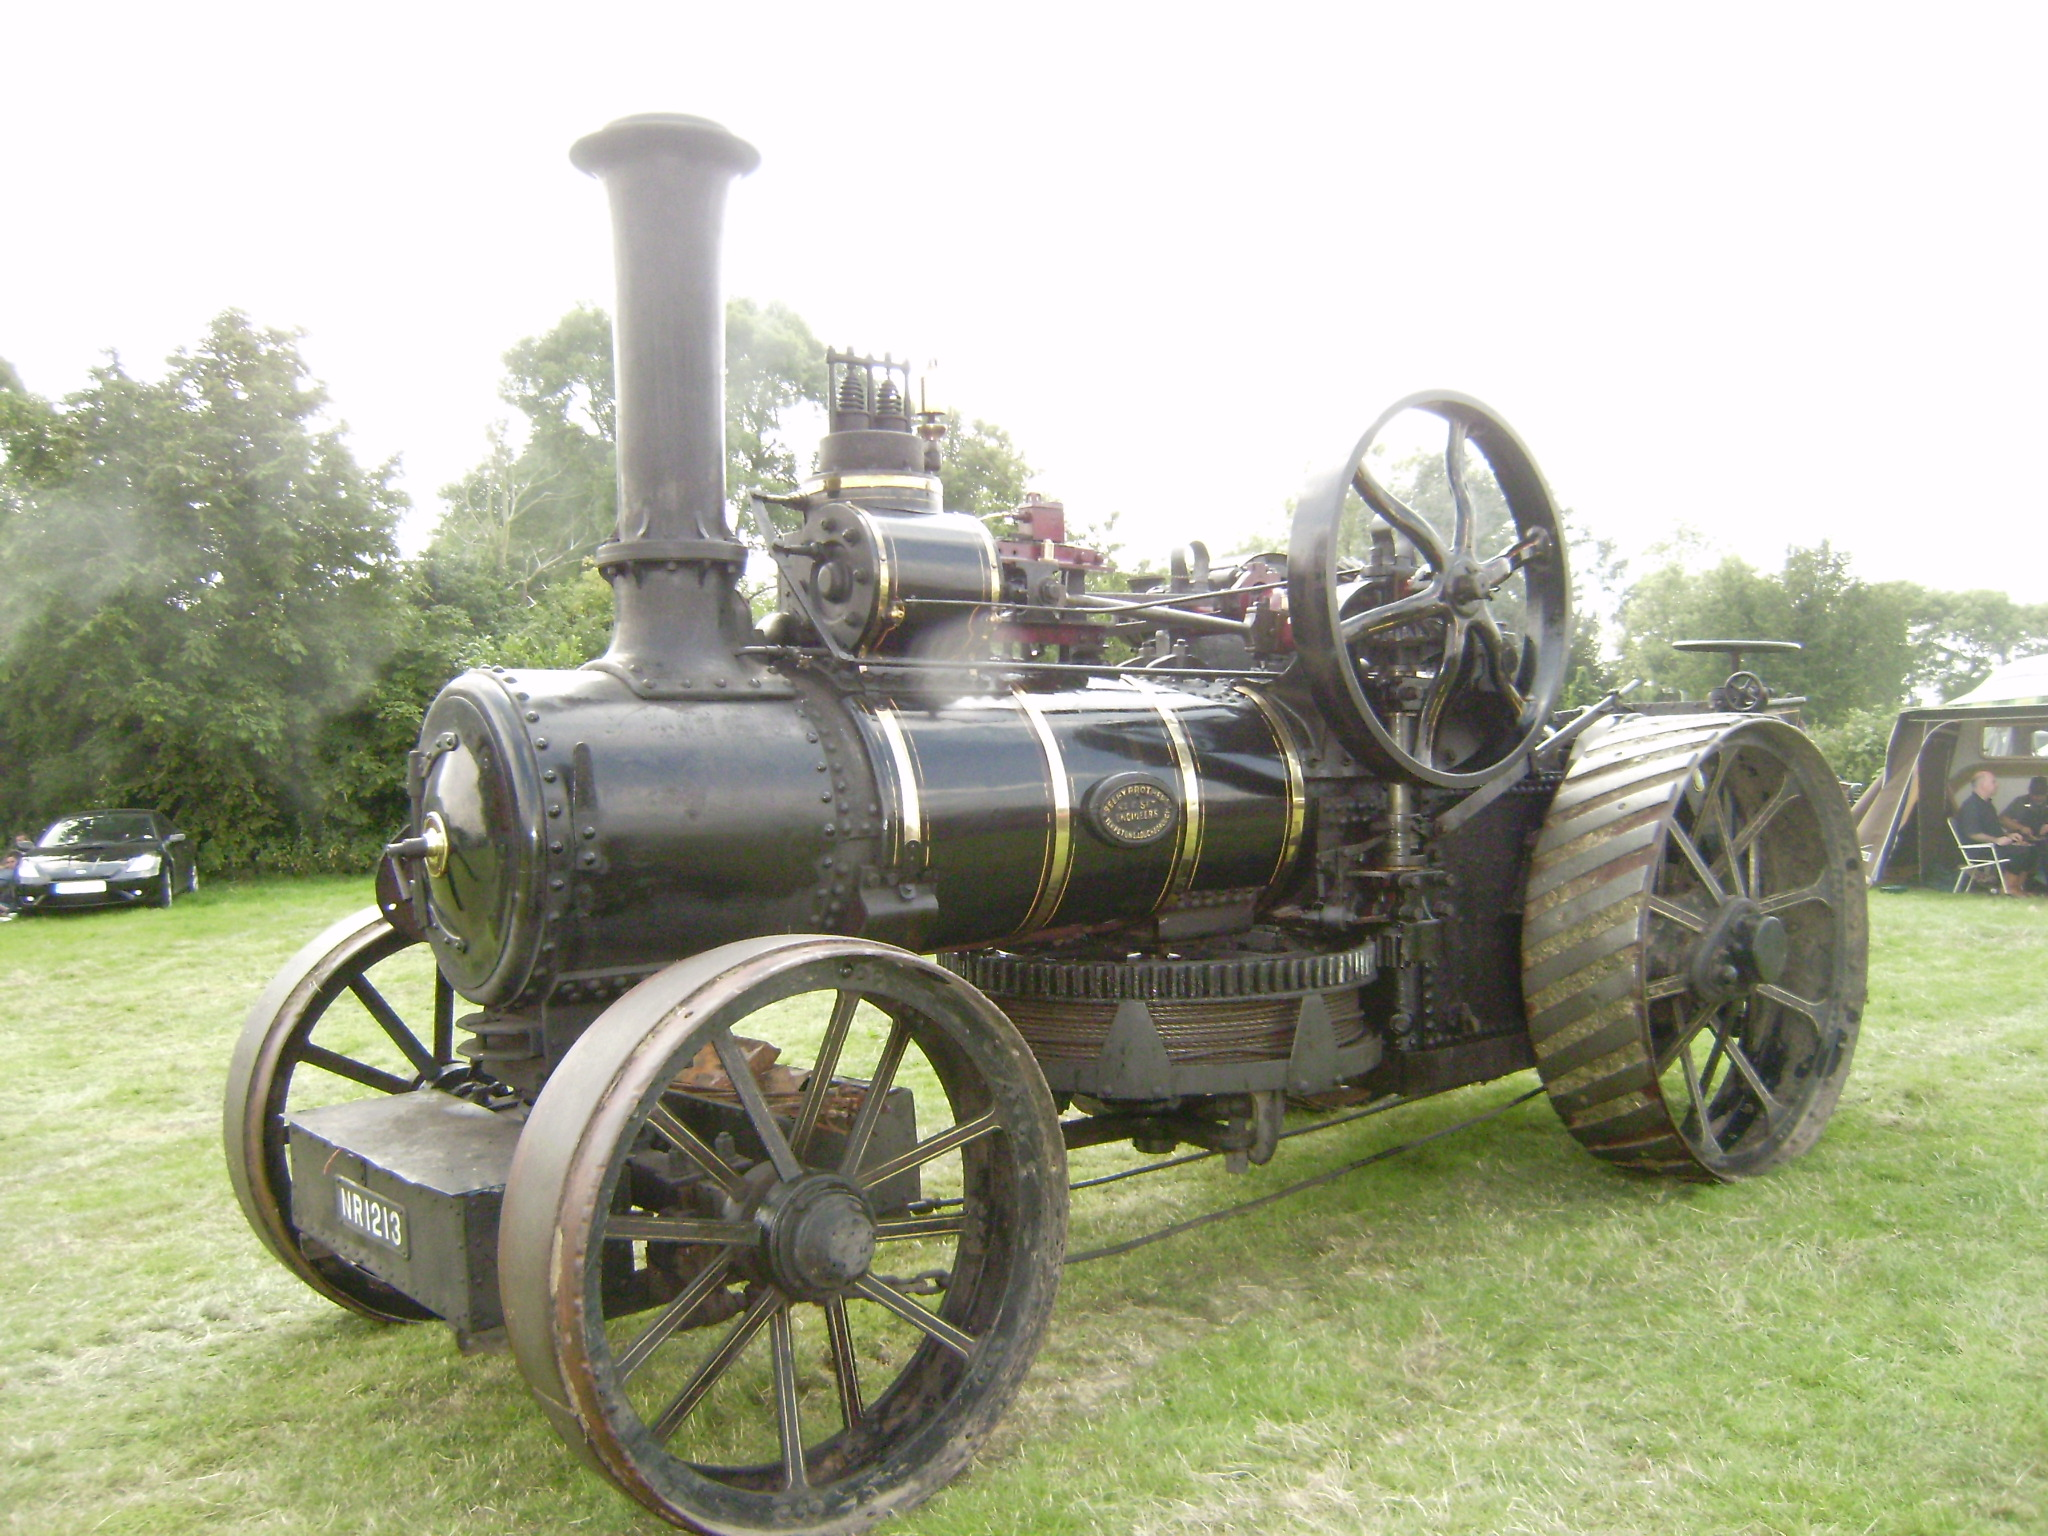 Traction Engine Tractor Construction Plant Wiki Fandom Powered Steam Car Diagram By Wikia